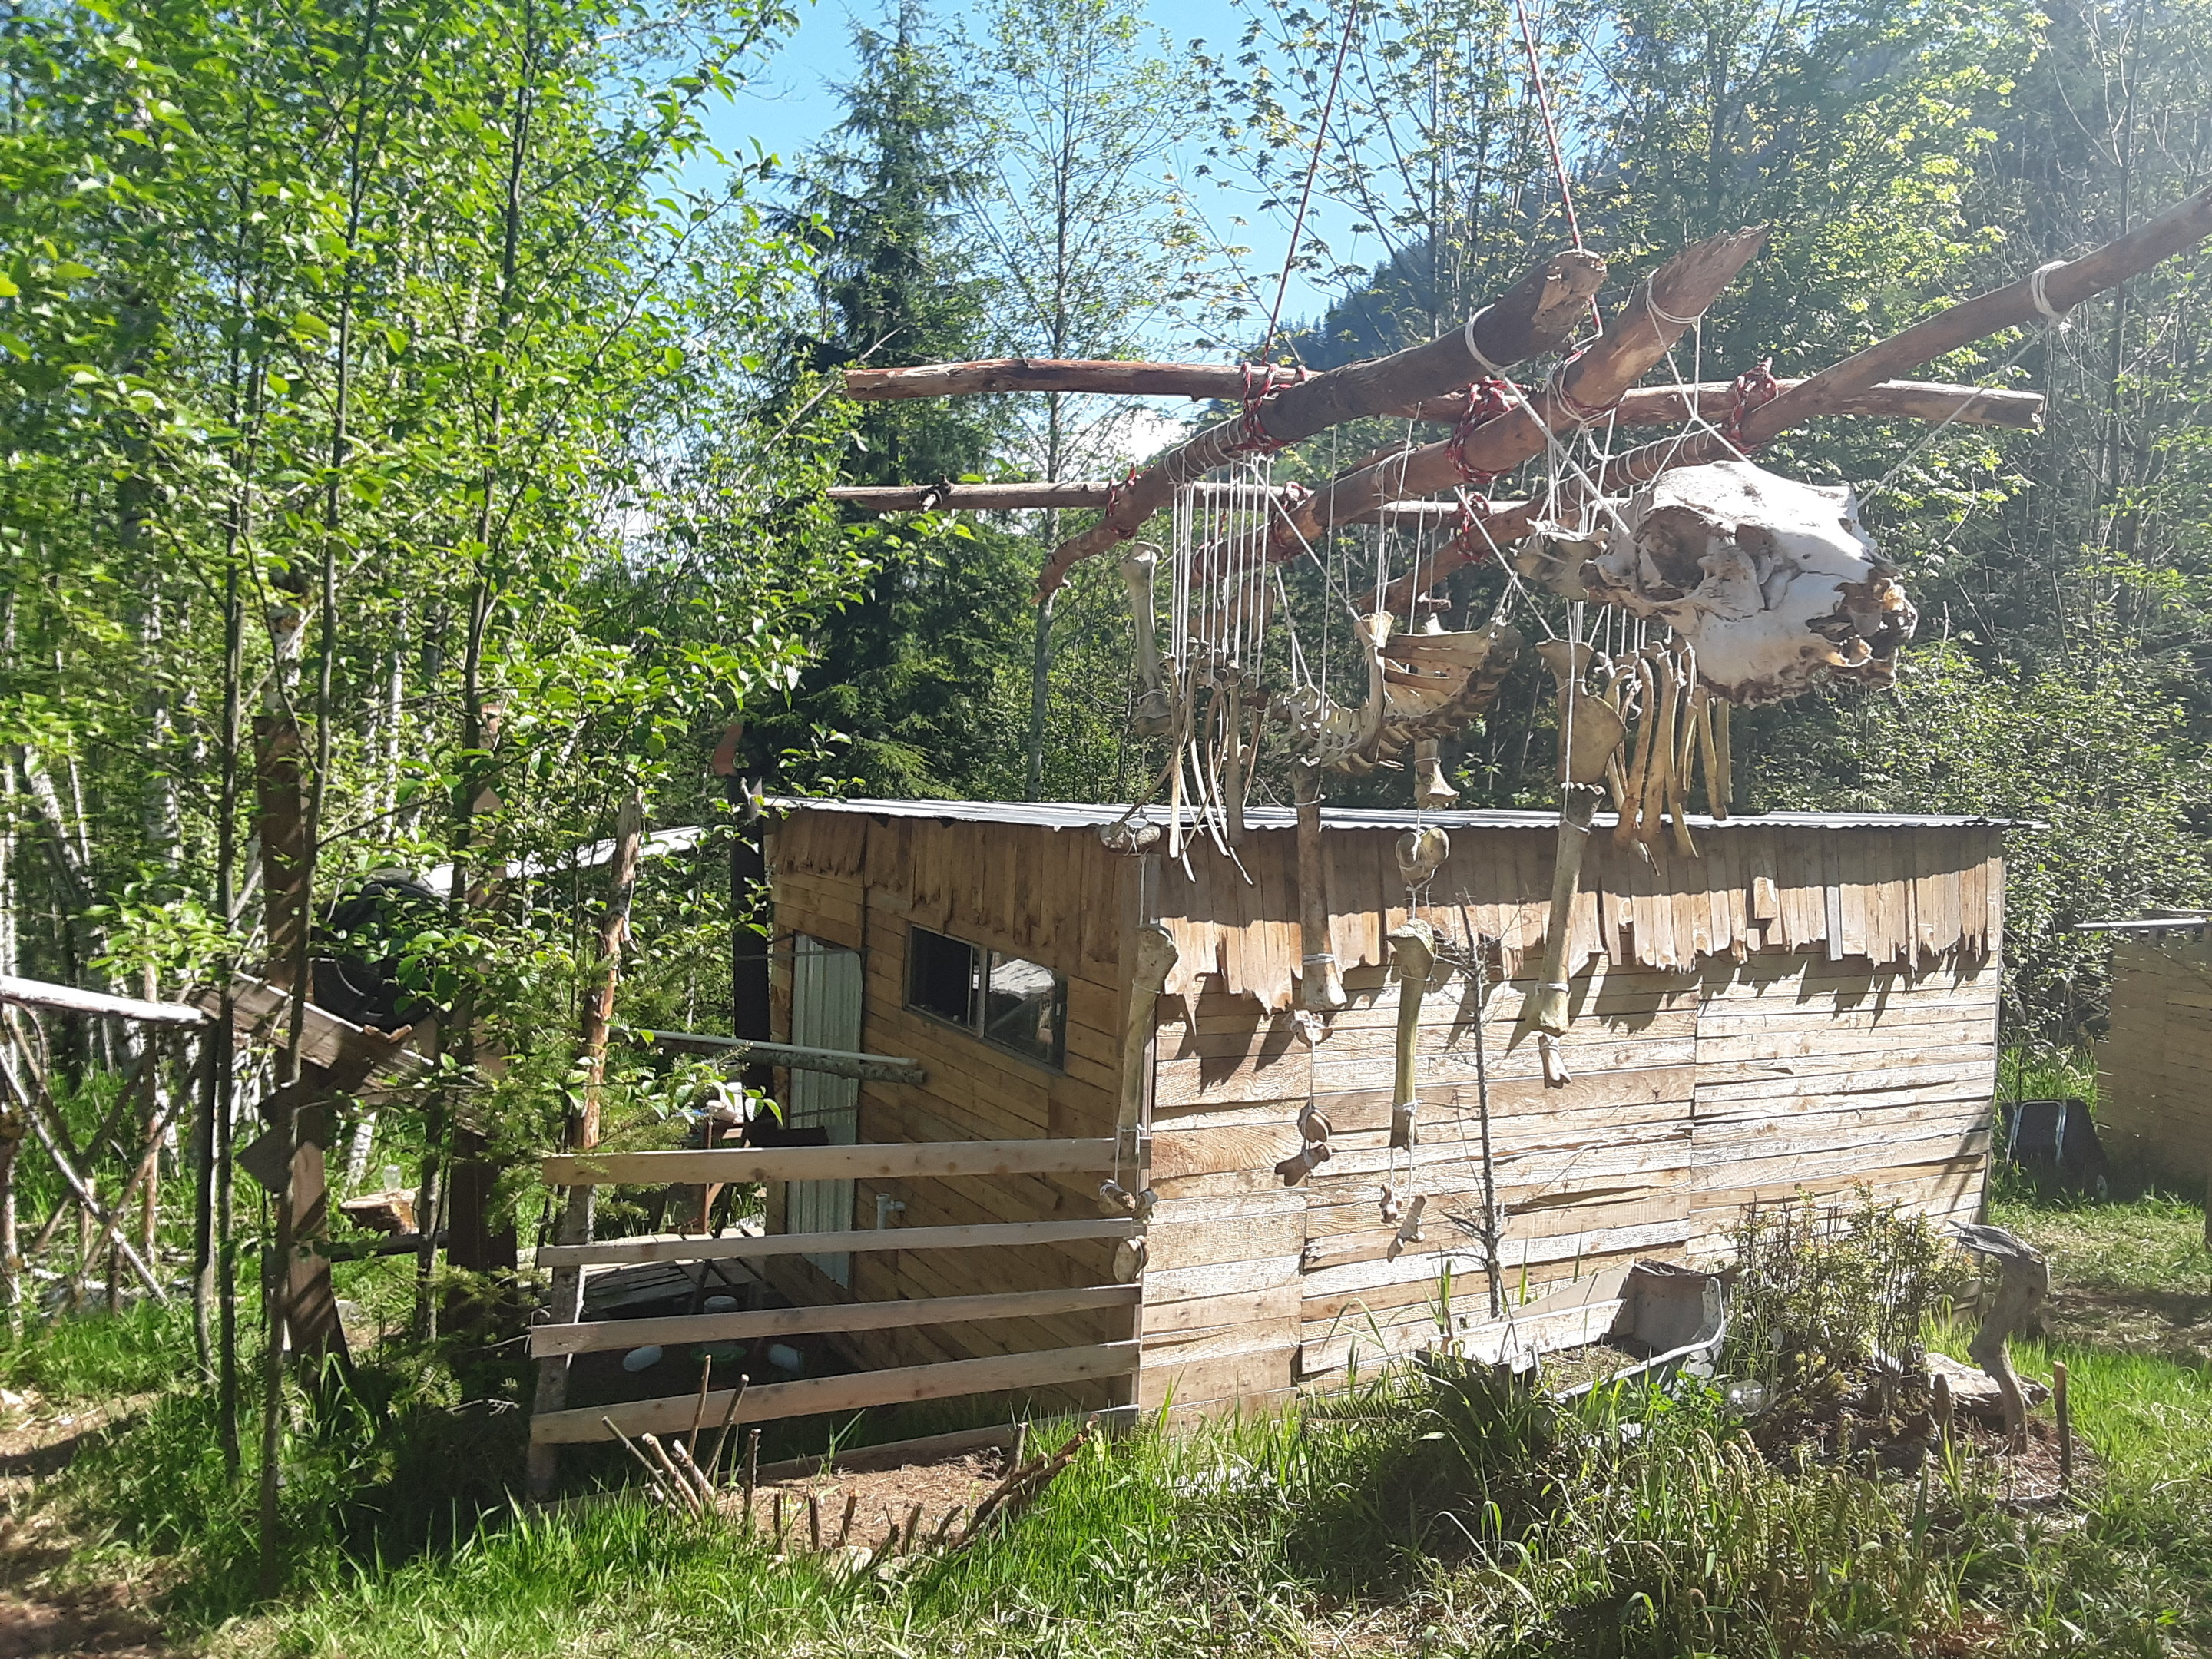 view-of-backhouse-with-skeleton-jpg.52750_Off-Grid homesteadin' wing'n it yeh_Alternative Housing_Squat the Planet_12:24 PM